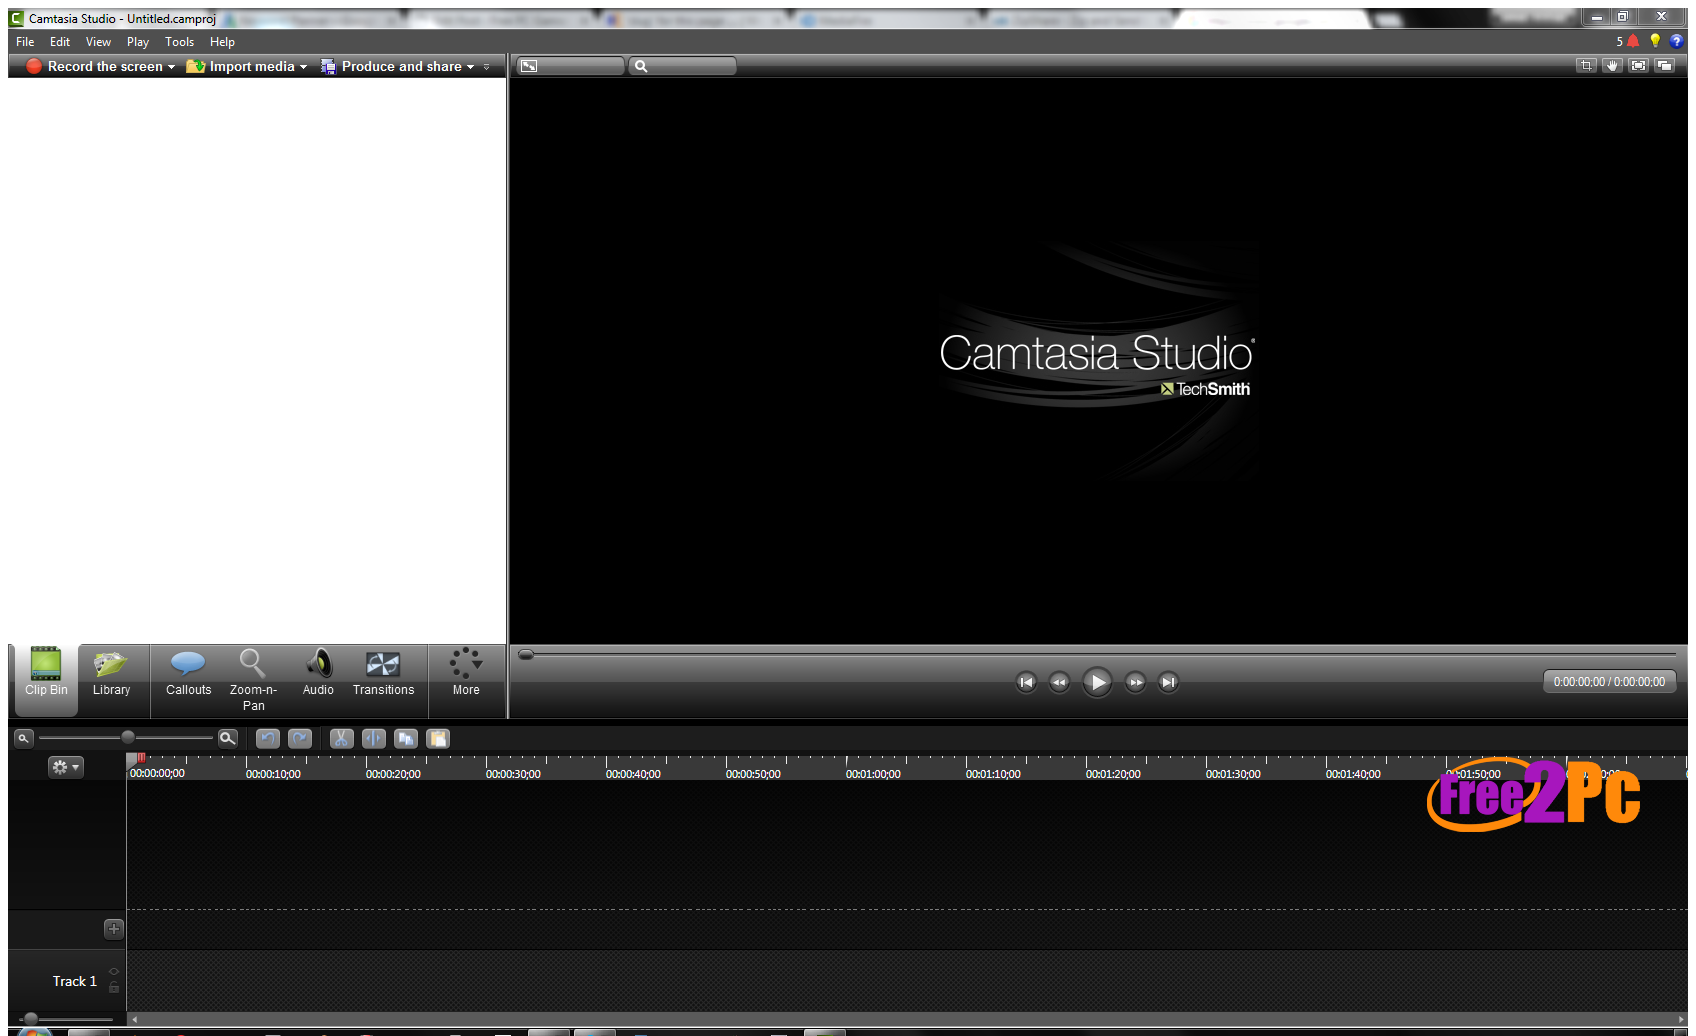 Camtasia Studio 2020.0.6 Crack Full Serial Keygen Latest ...